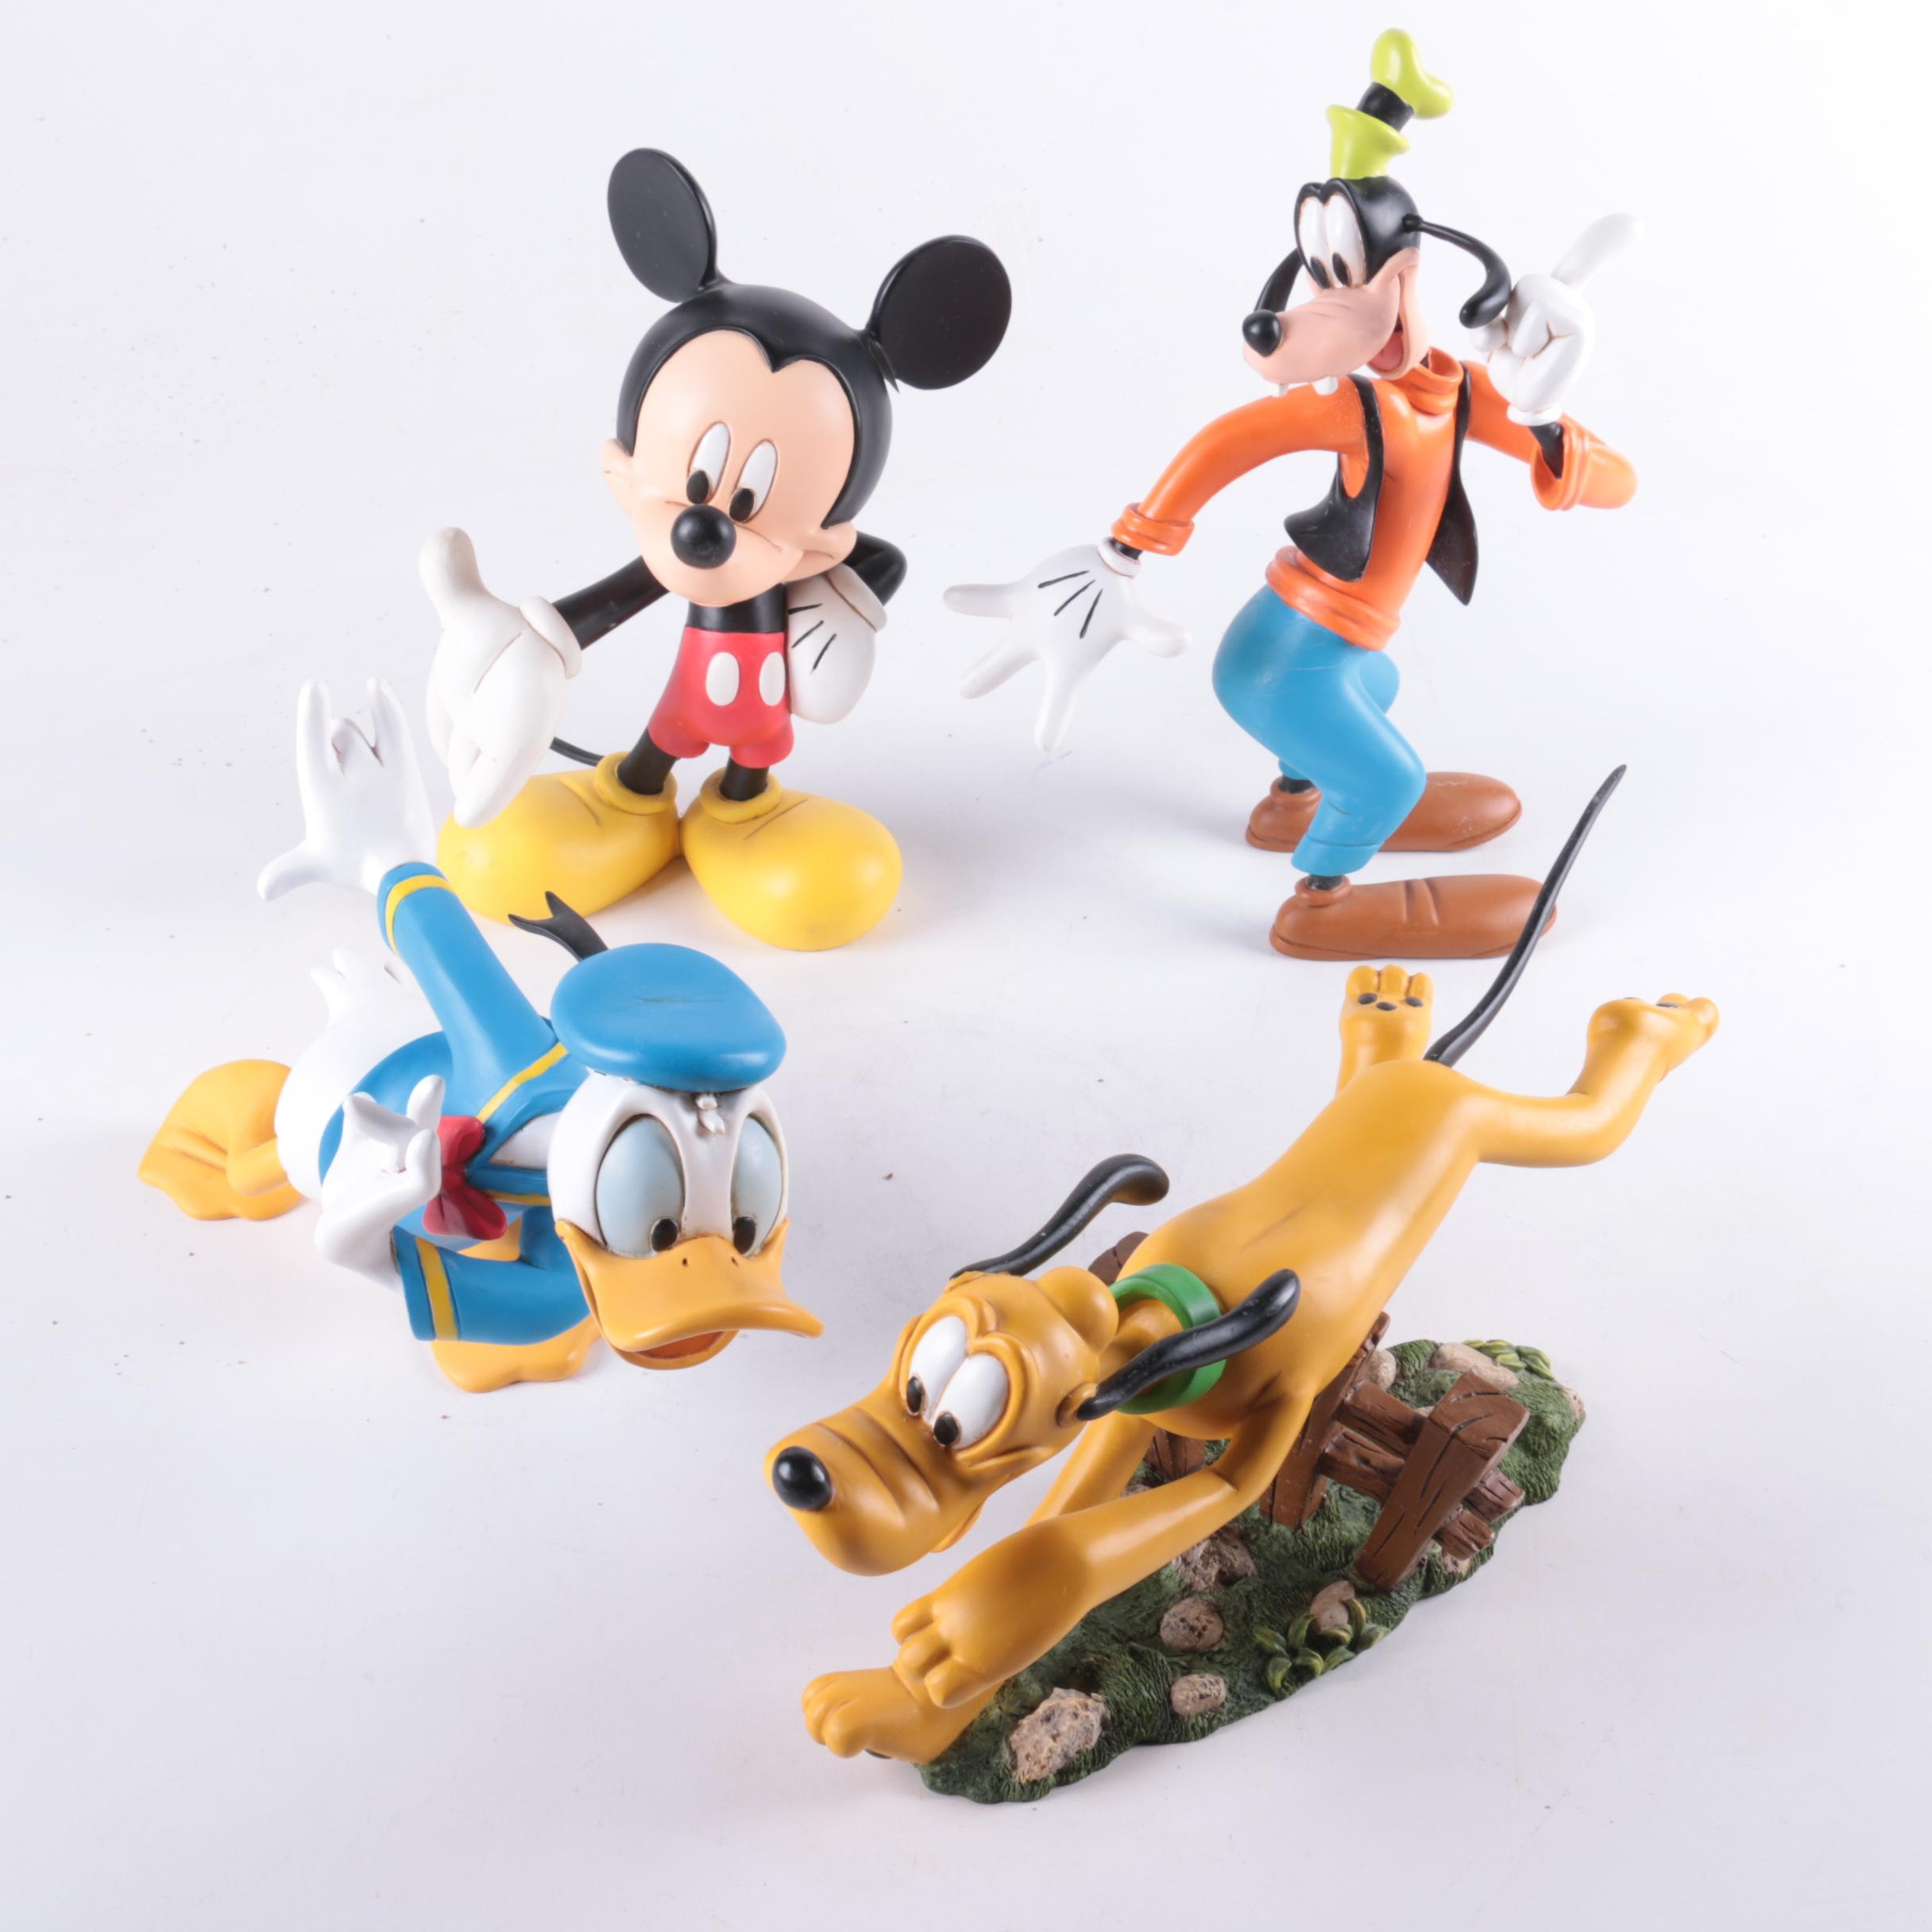 Resin Disney Figurines